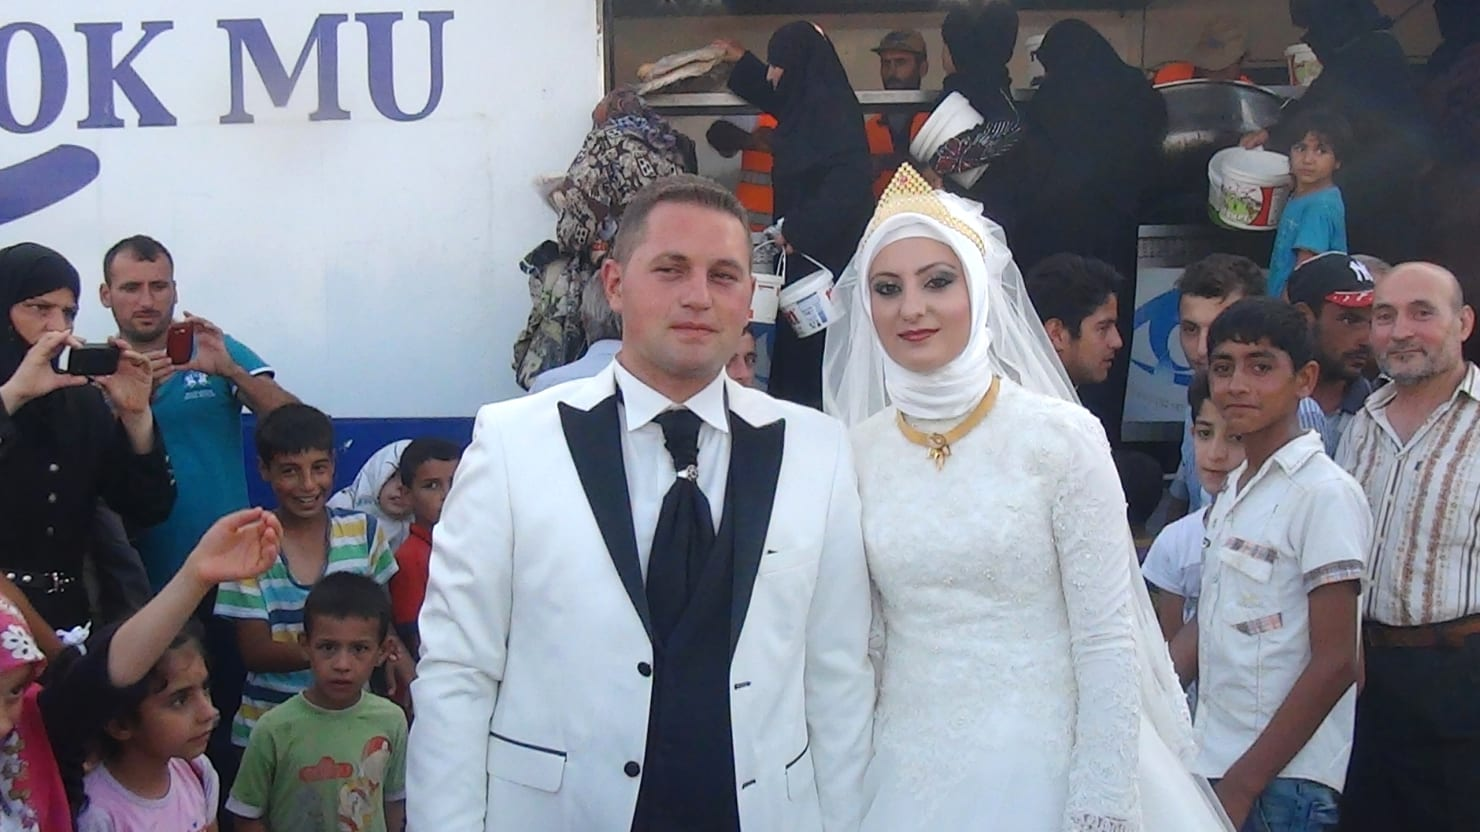 This Luminous Turkish Newlywed Spent Her Wedding Day Running A Bread Line For Thousands Of Starving Syrian Refugees